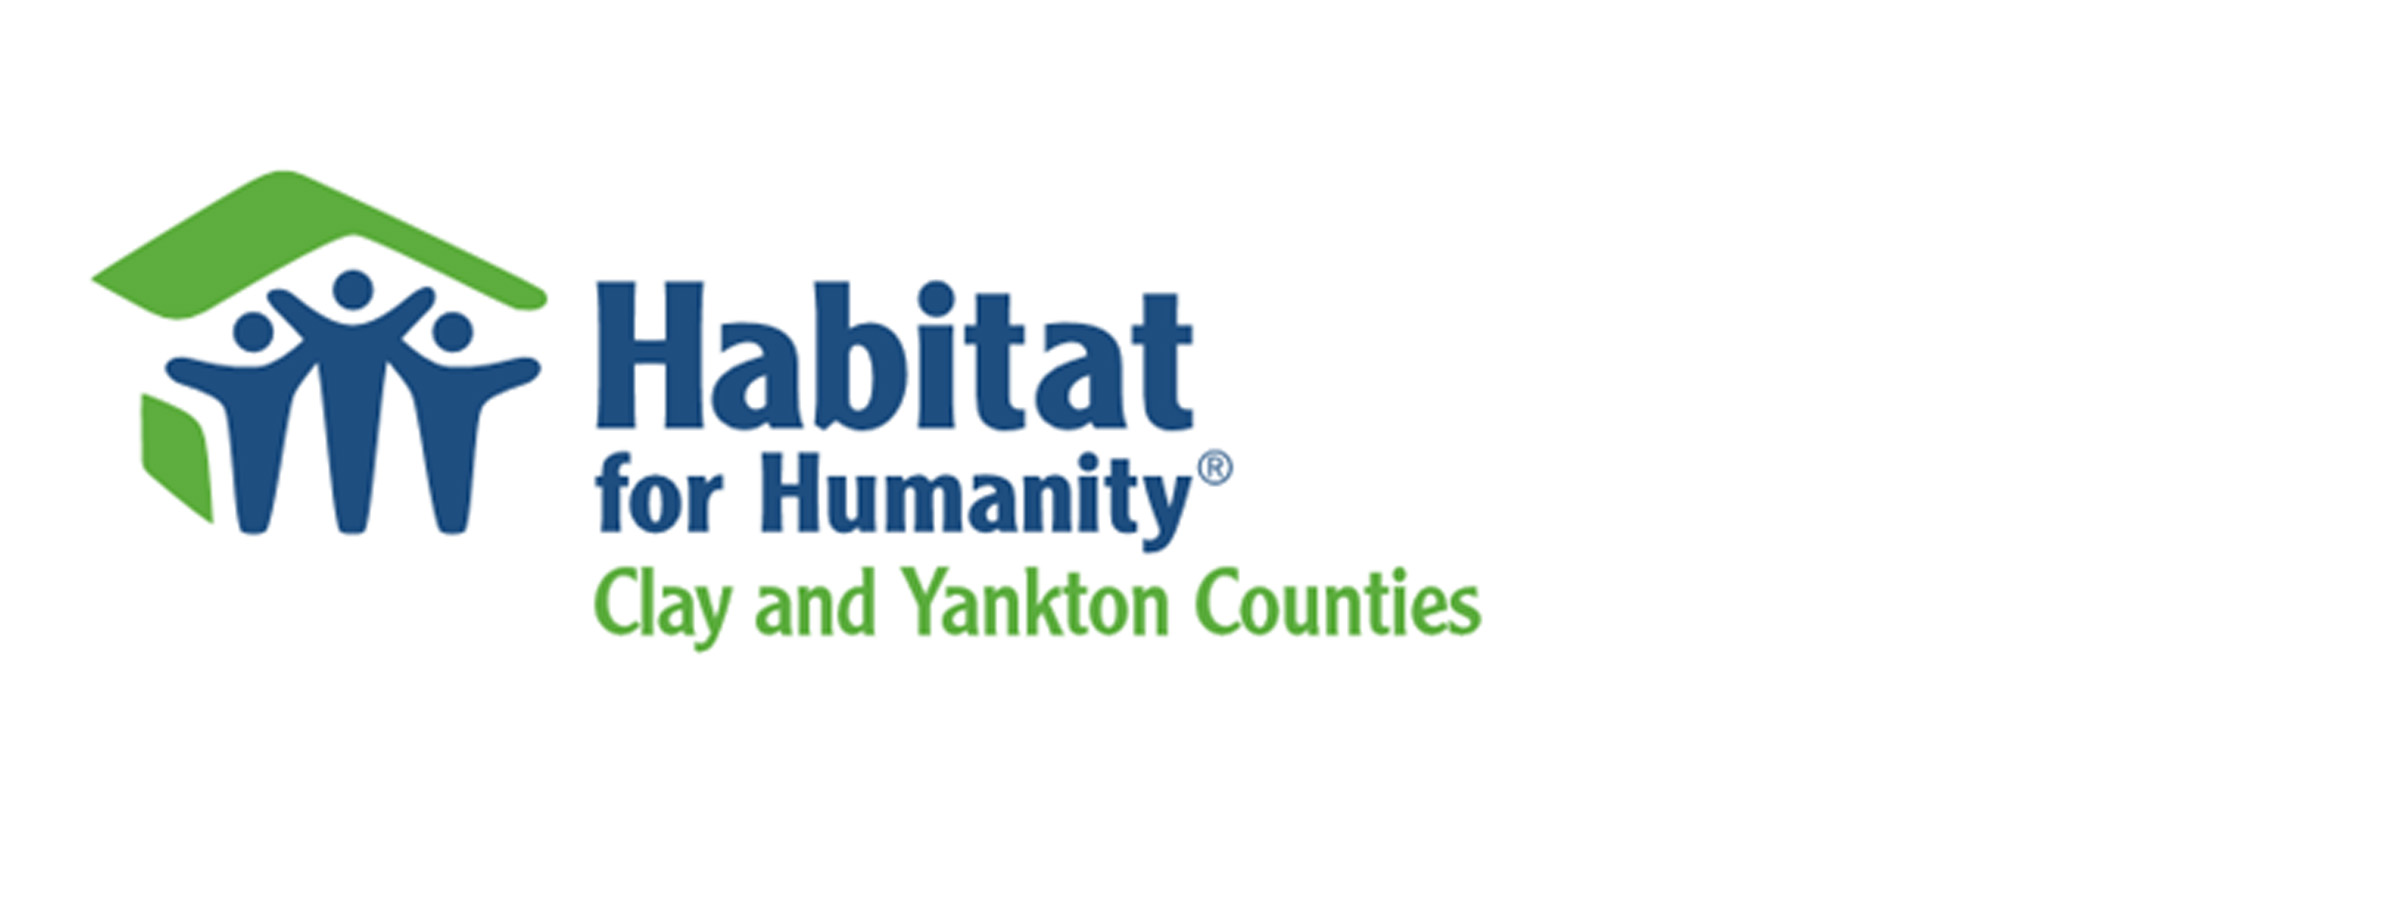 Executive Director Habitat for Humanity of Clay and Yankton Counties Slide Image